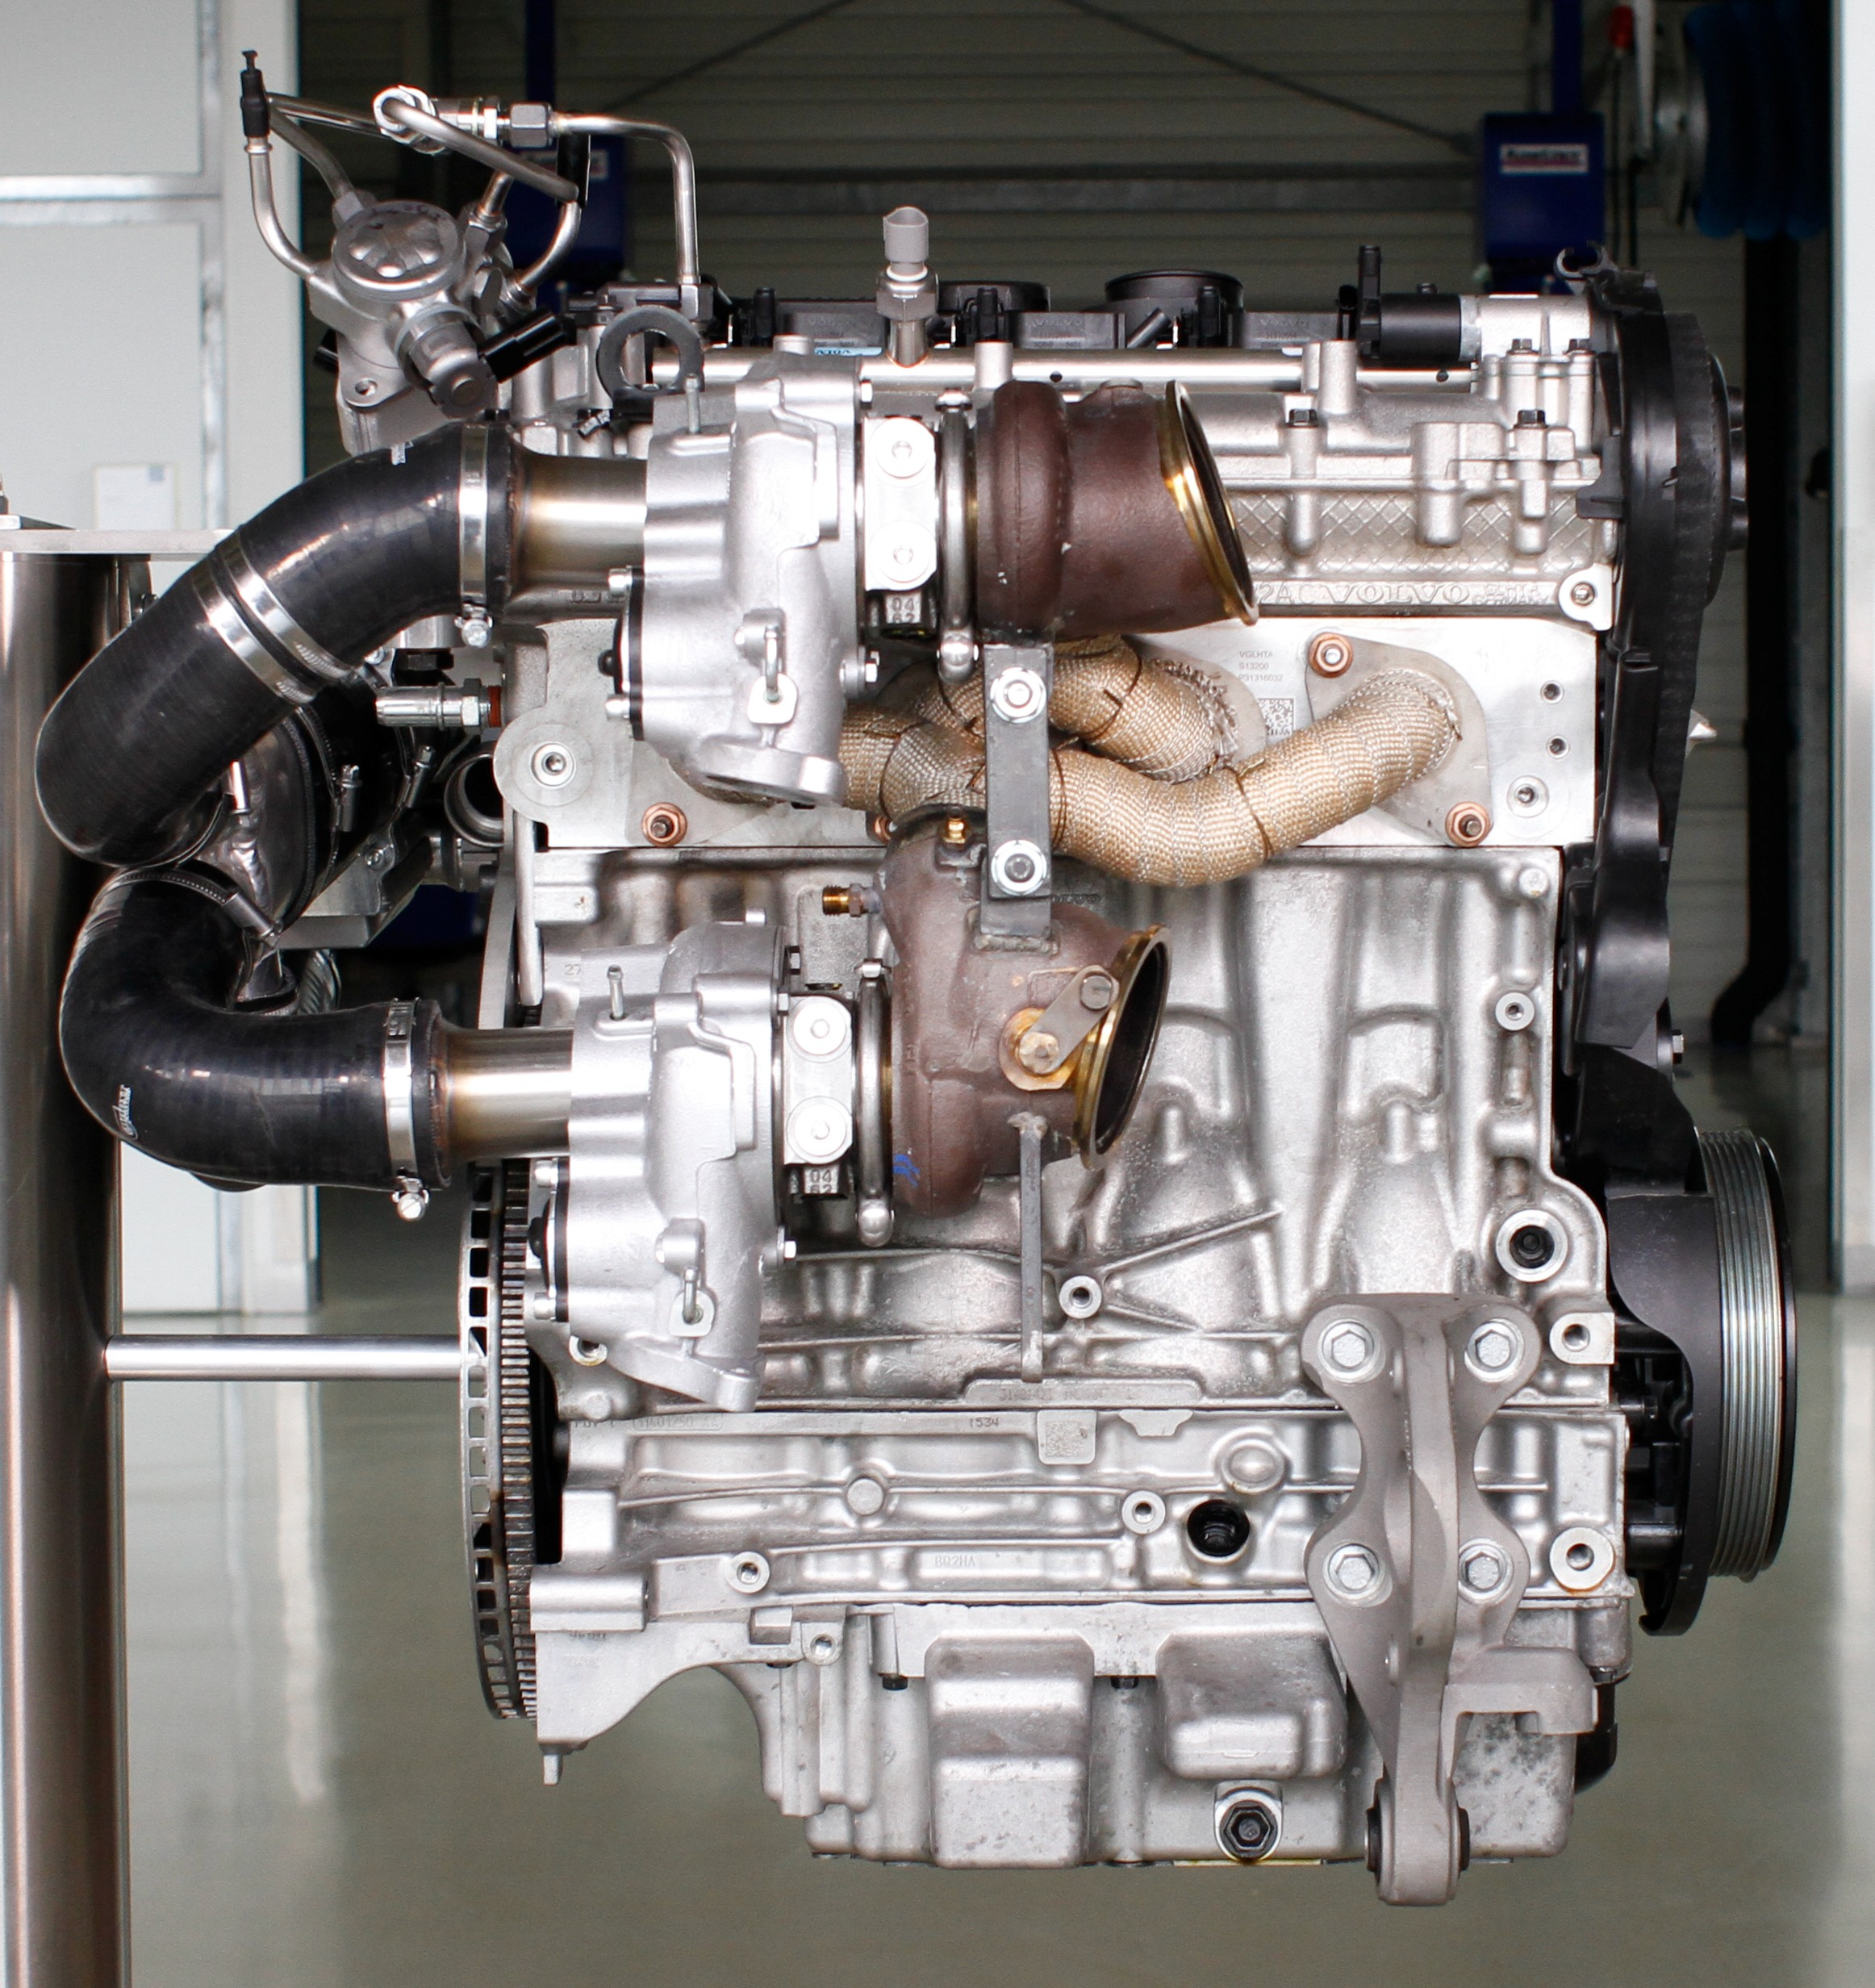 an analysis of turbo charged engines in modern automobiles 27 system durability analysis in engine system design 1112 diesel engine system design models of 135 exhaust manifold design for turbocharged engines 883.